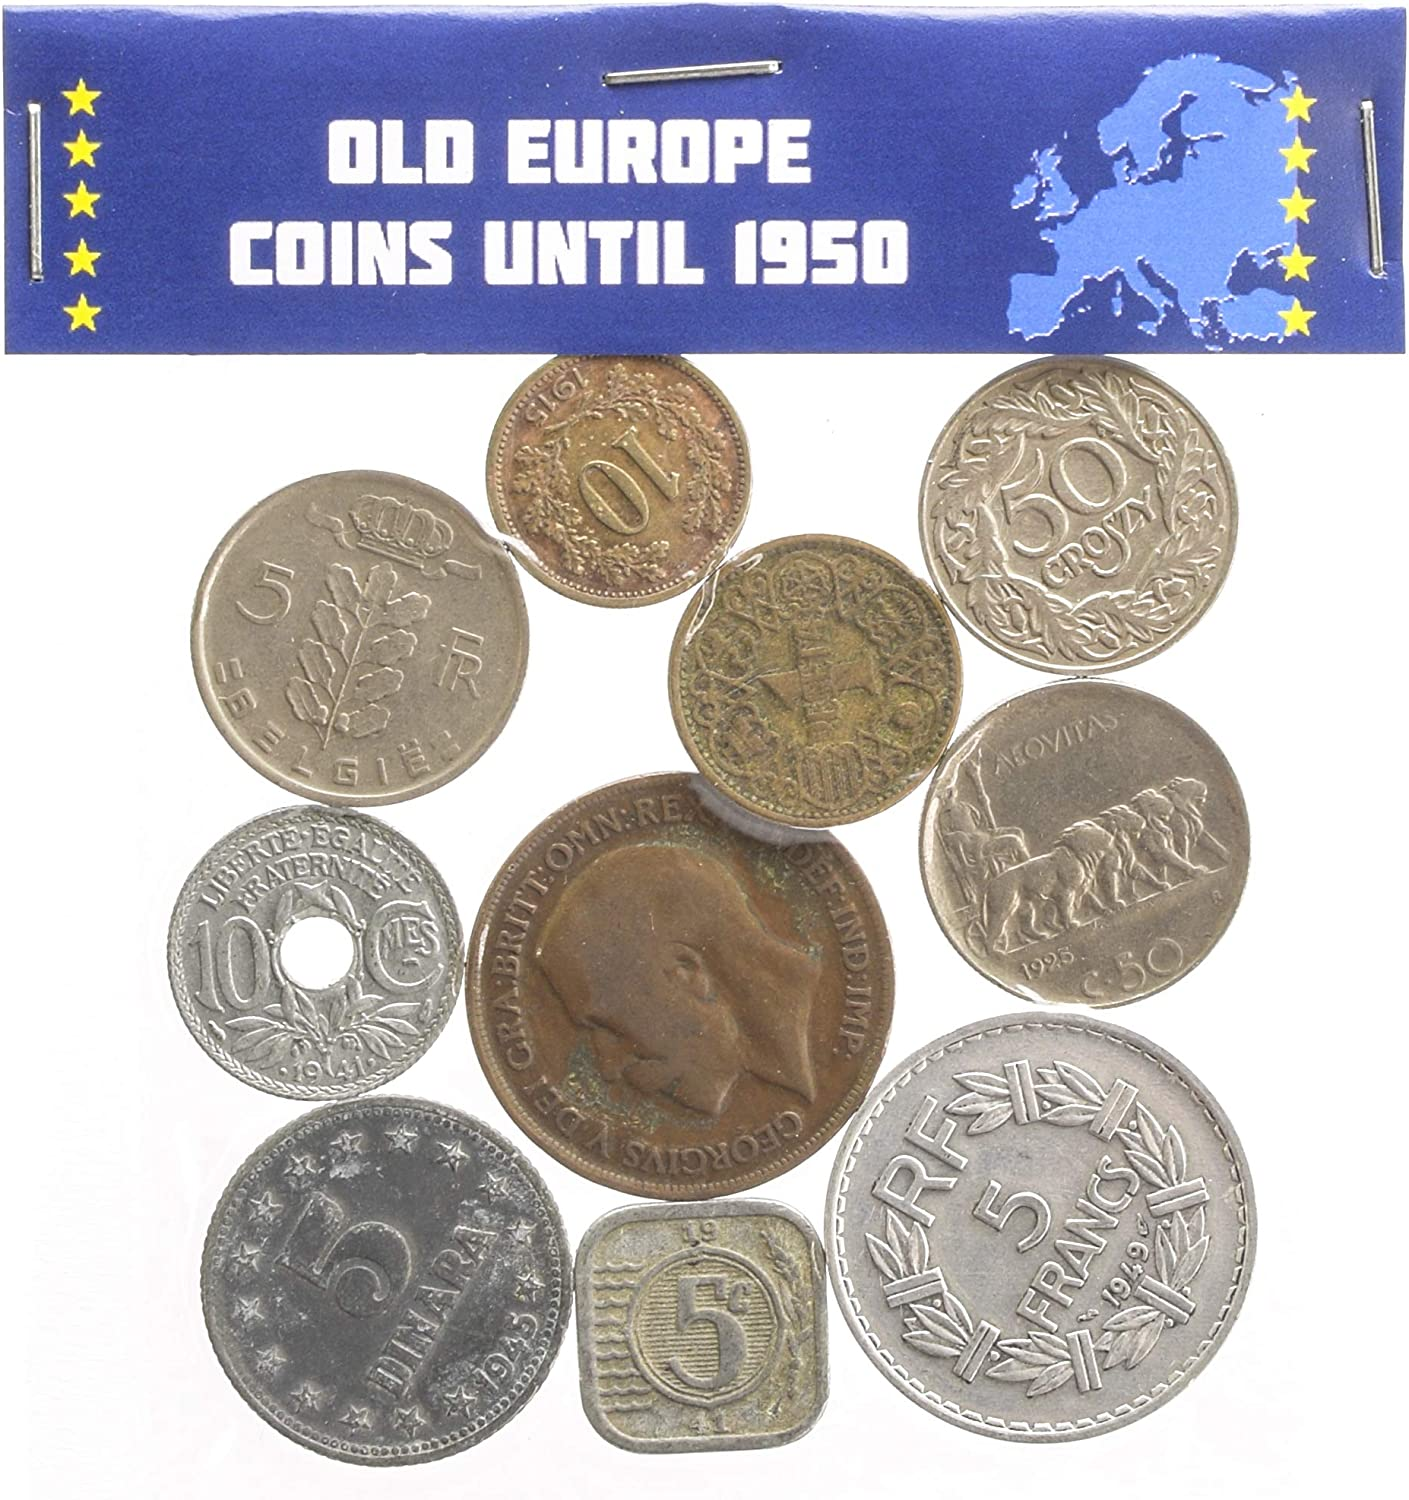 LOT OF 400 OLD EUROPE COINS UNTIL 1950 COLLECTIBLE CURRENCY FROM 19-20 CENTURY